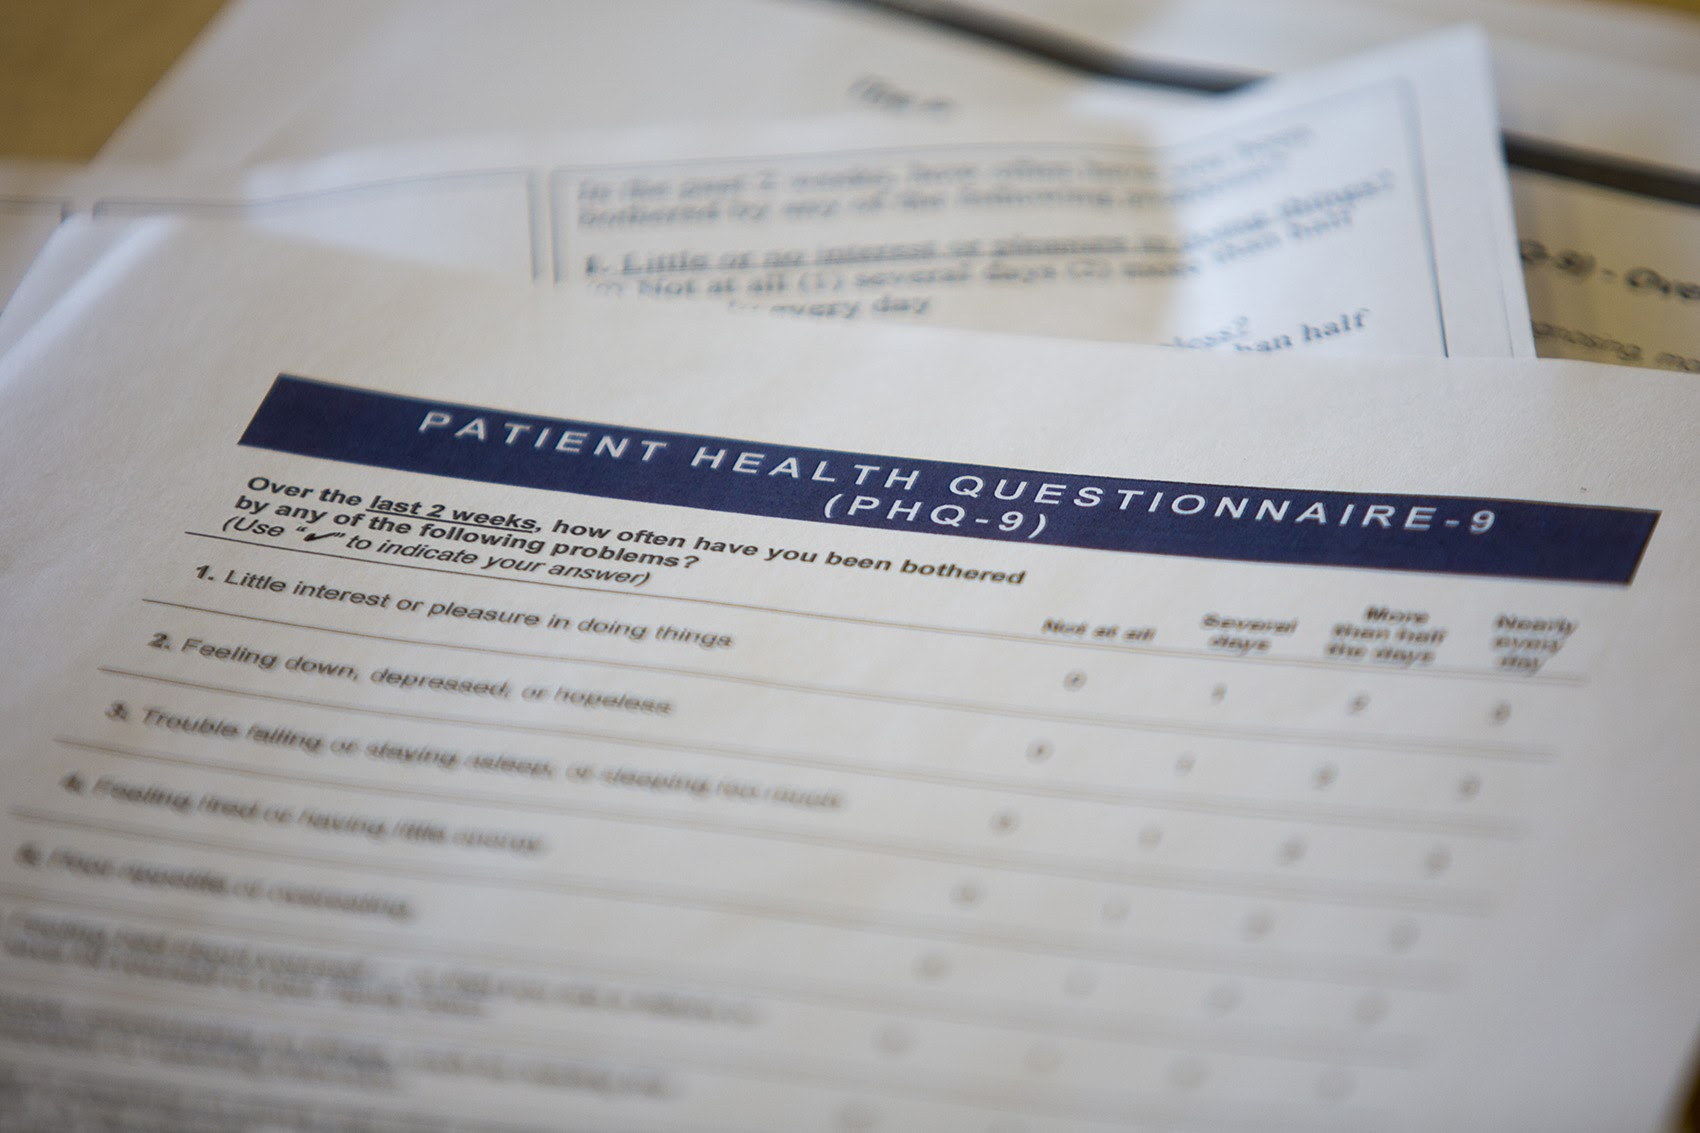 """One Massachusetts doctor says she can't rely on her usual questionnaire to check for depression, because so many patients feel """"down, depressed or hopeless"""" following the election. Pictured here, a patient health questionnaire about depression. (Jesse Costa/WBUR)"""